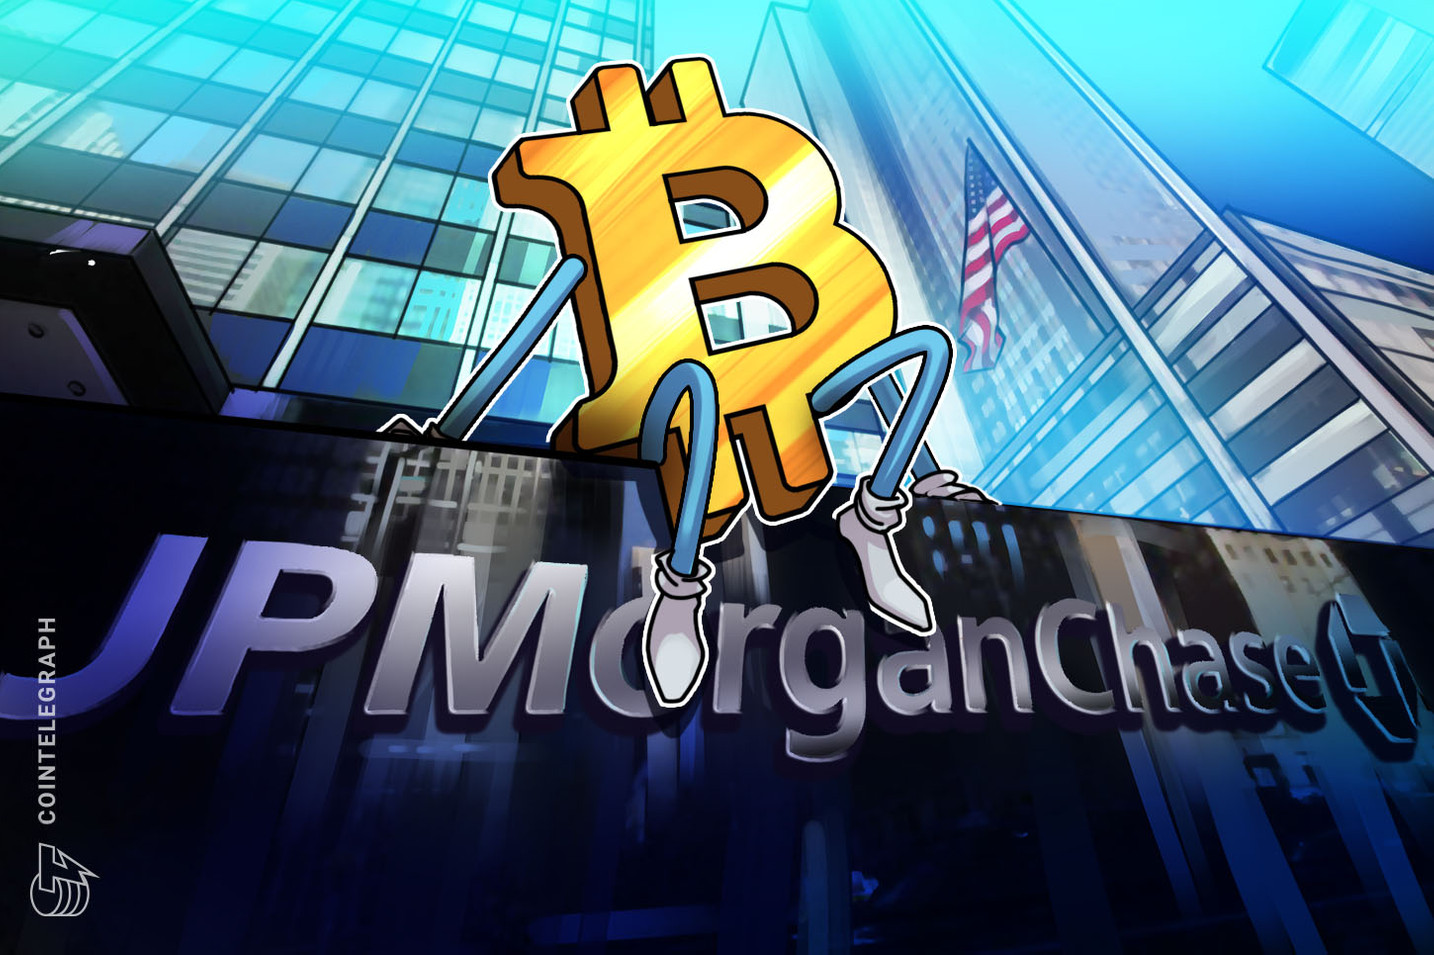 JPMorgan turns bullish on Bitcoin citing 'potential long-term upside'